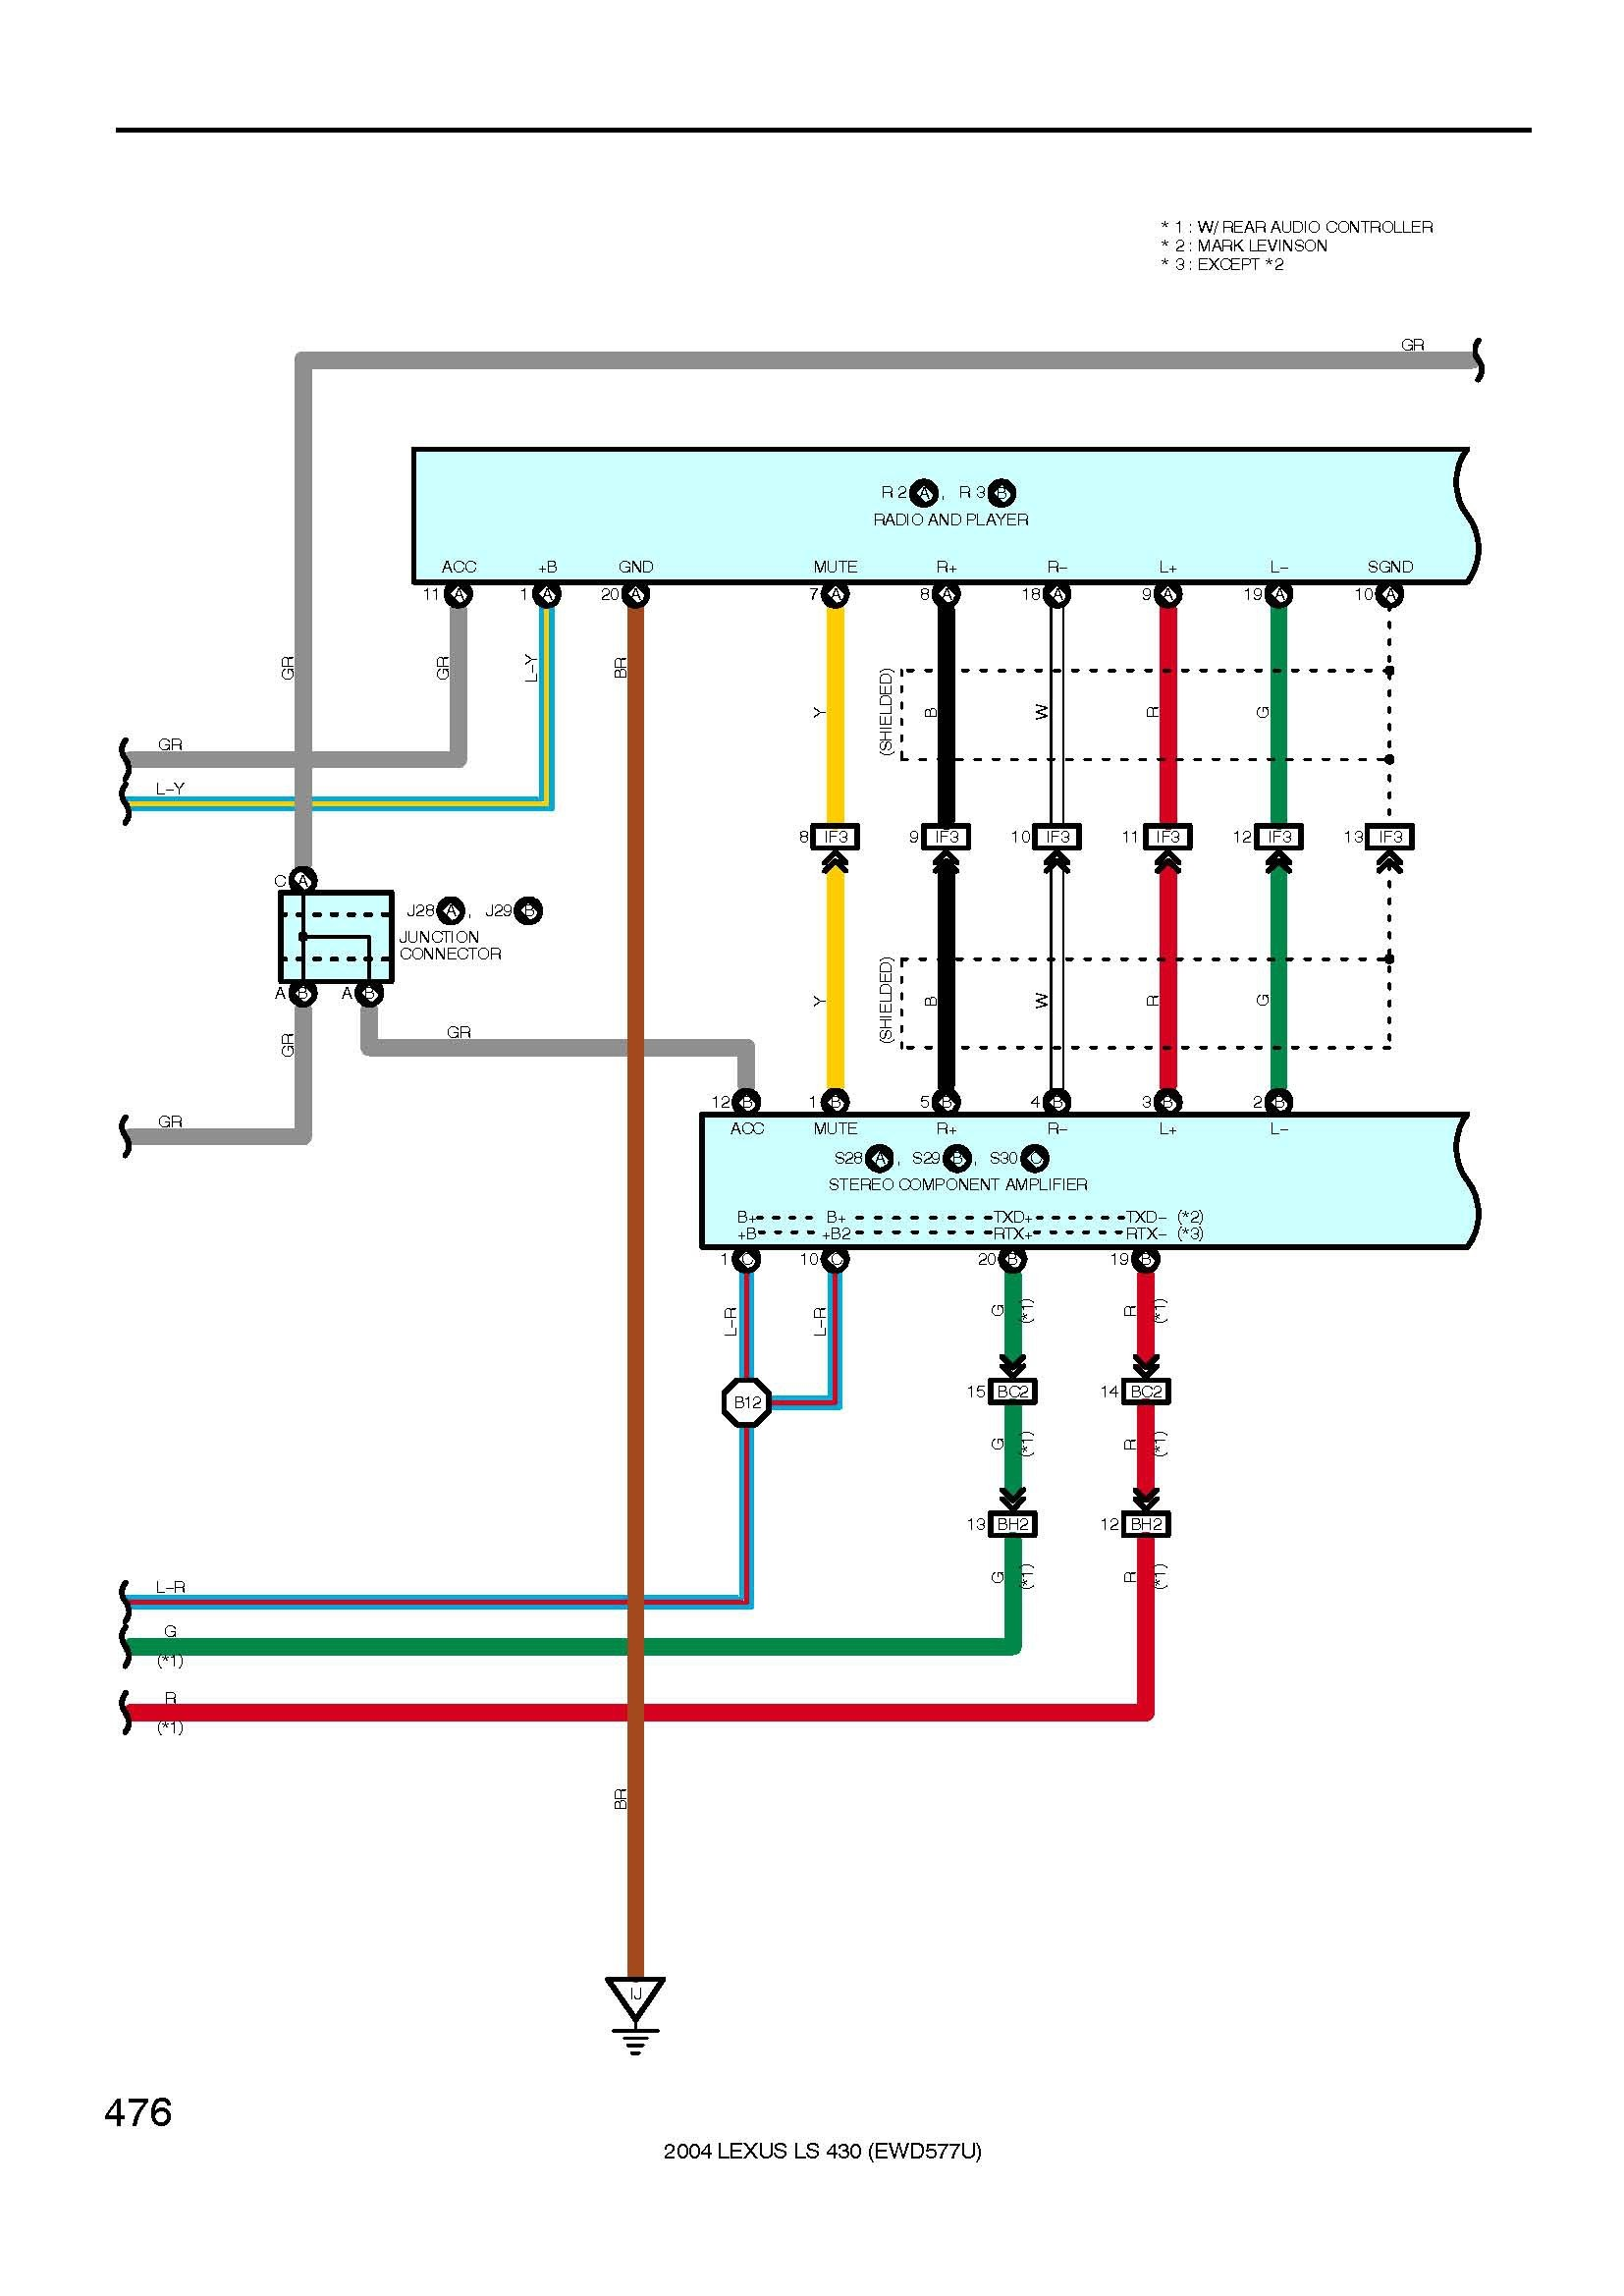 Car Electrical Diagram My Wiring Lexus Ac 2010 12 31 077as Page 2 Rx 350 Stereo